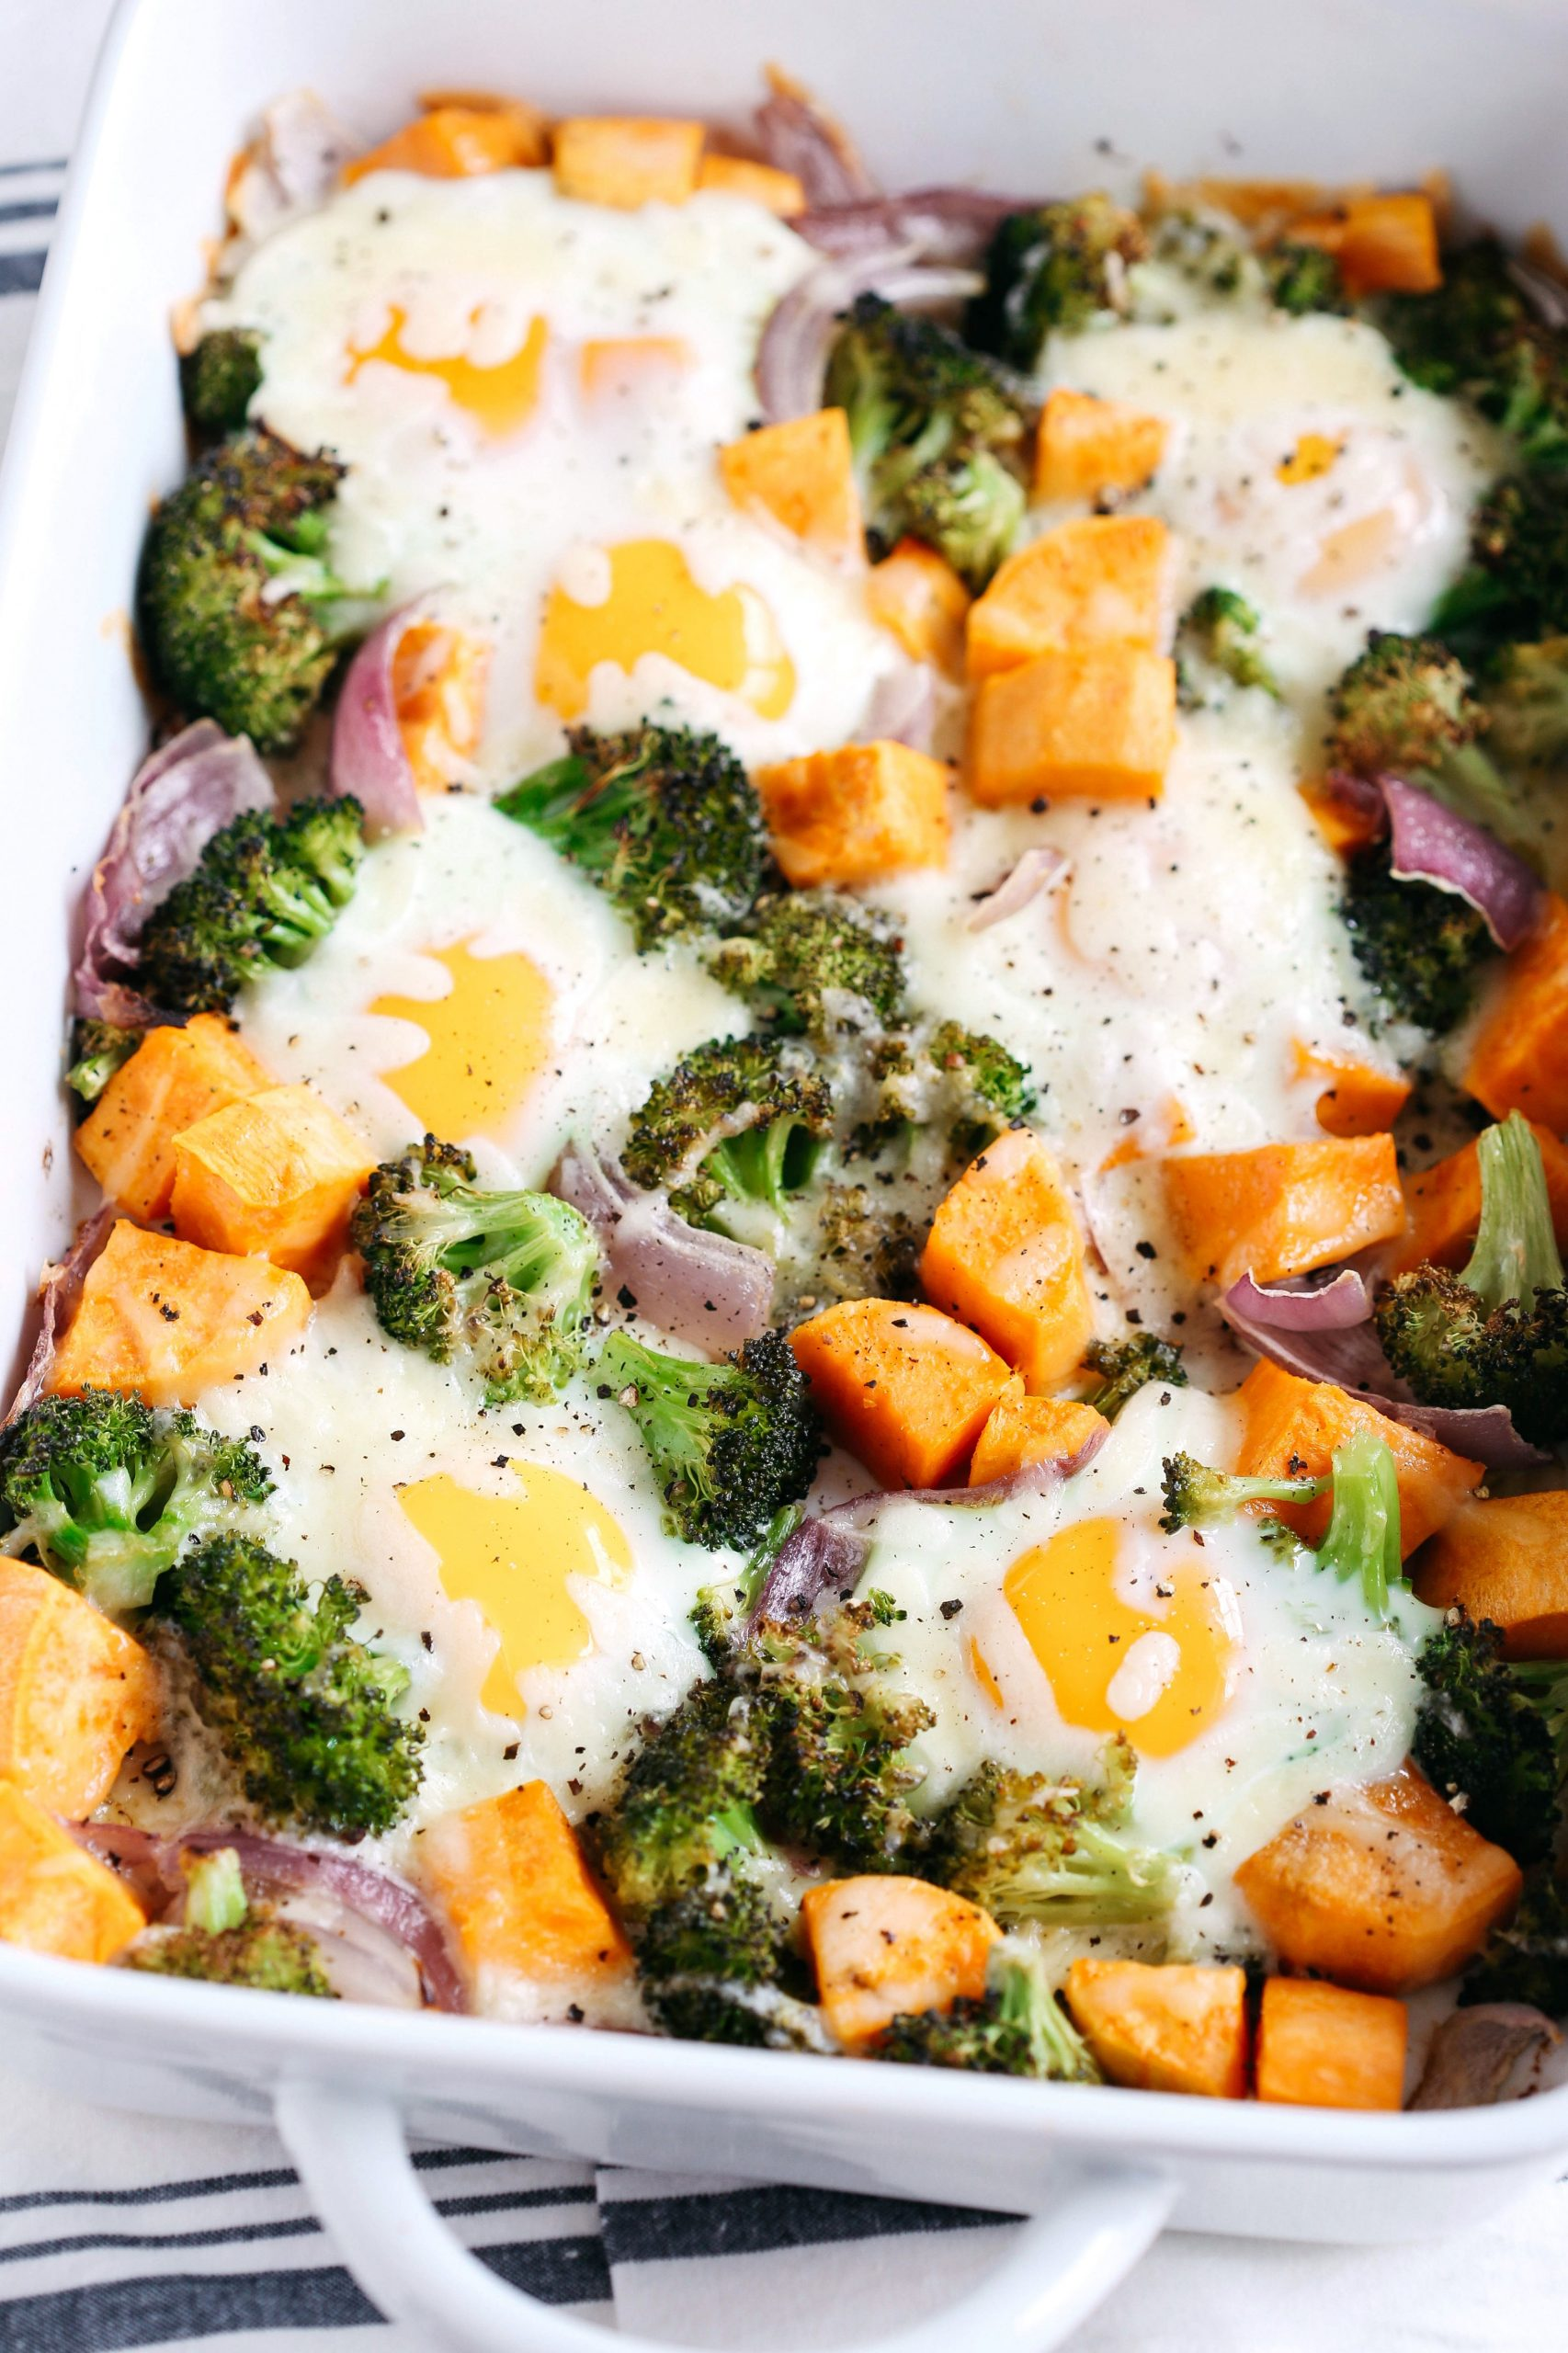 Baked Egg and Roasted Veggie Casserole